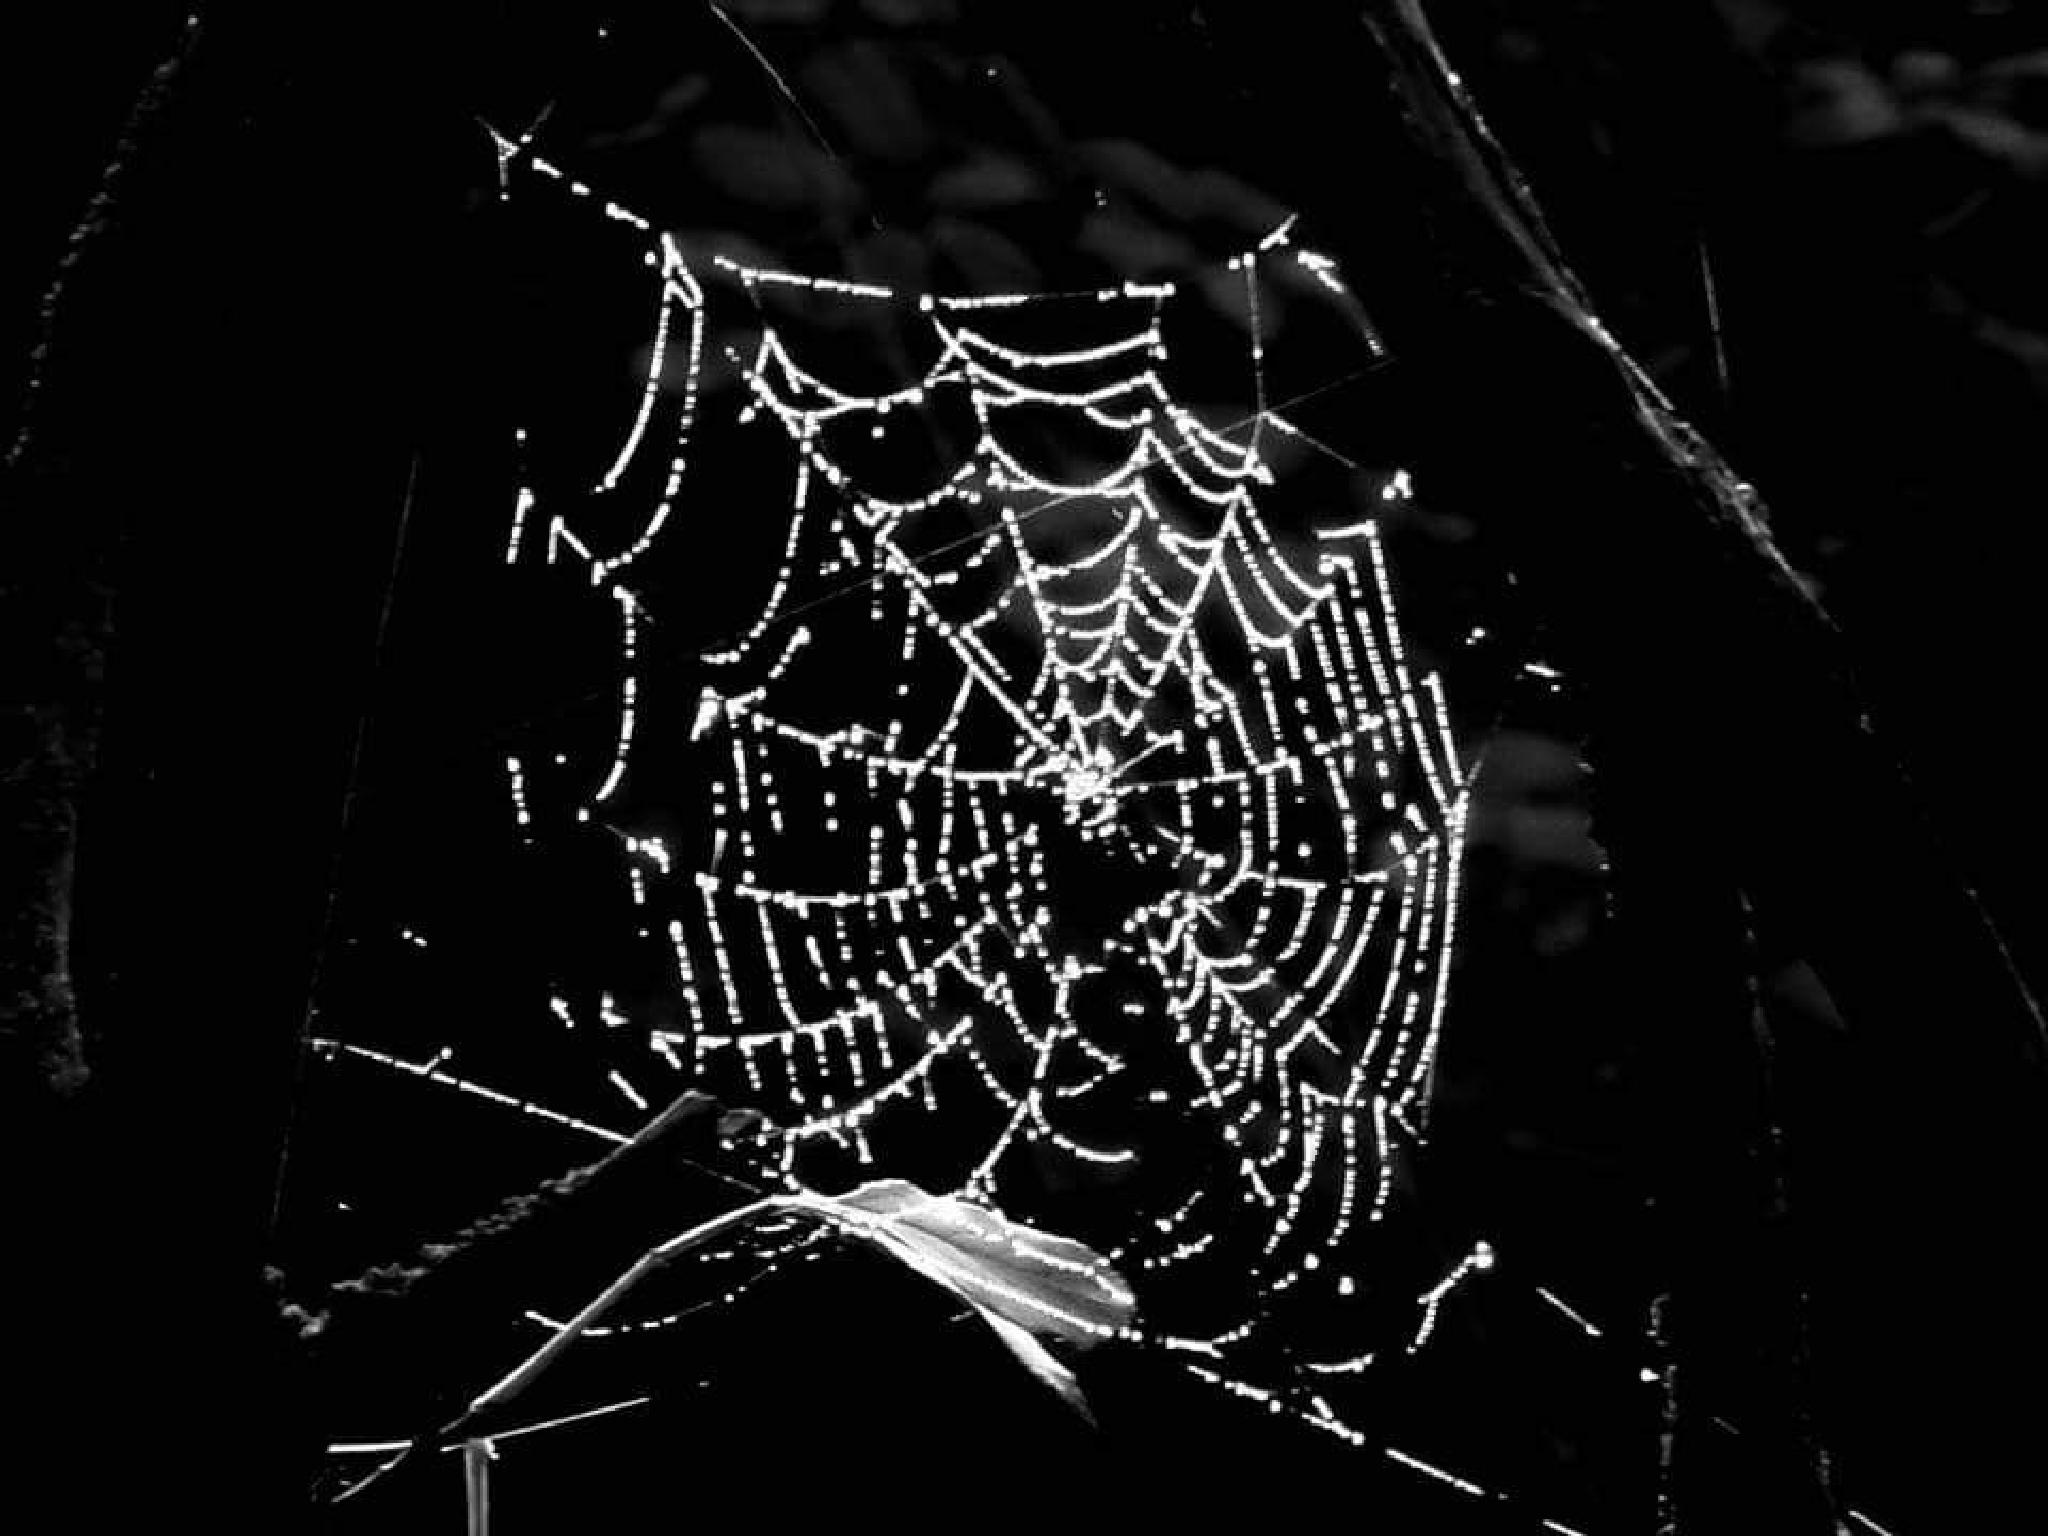 Bejewelled web by david.griffith.522